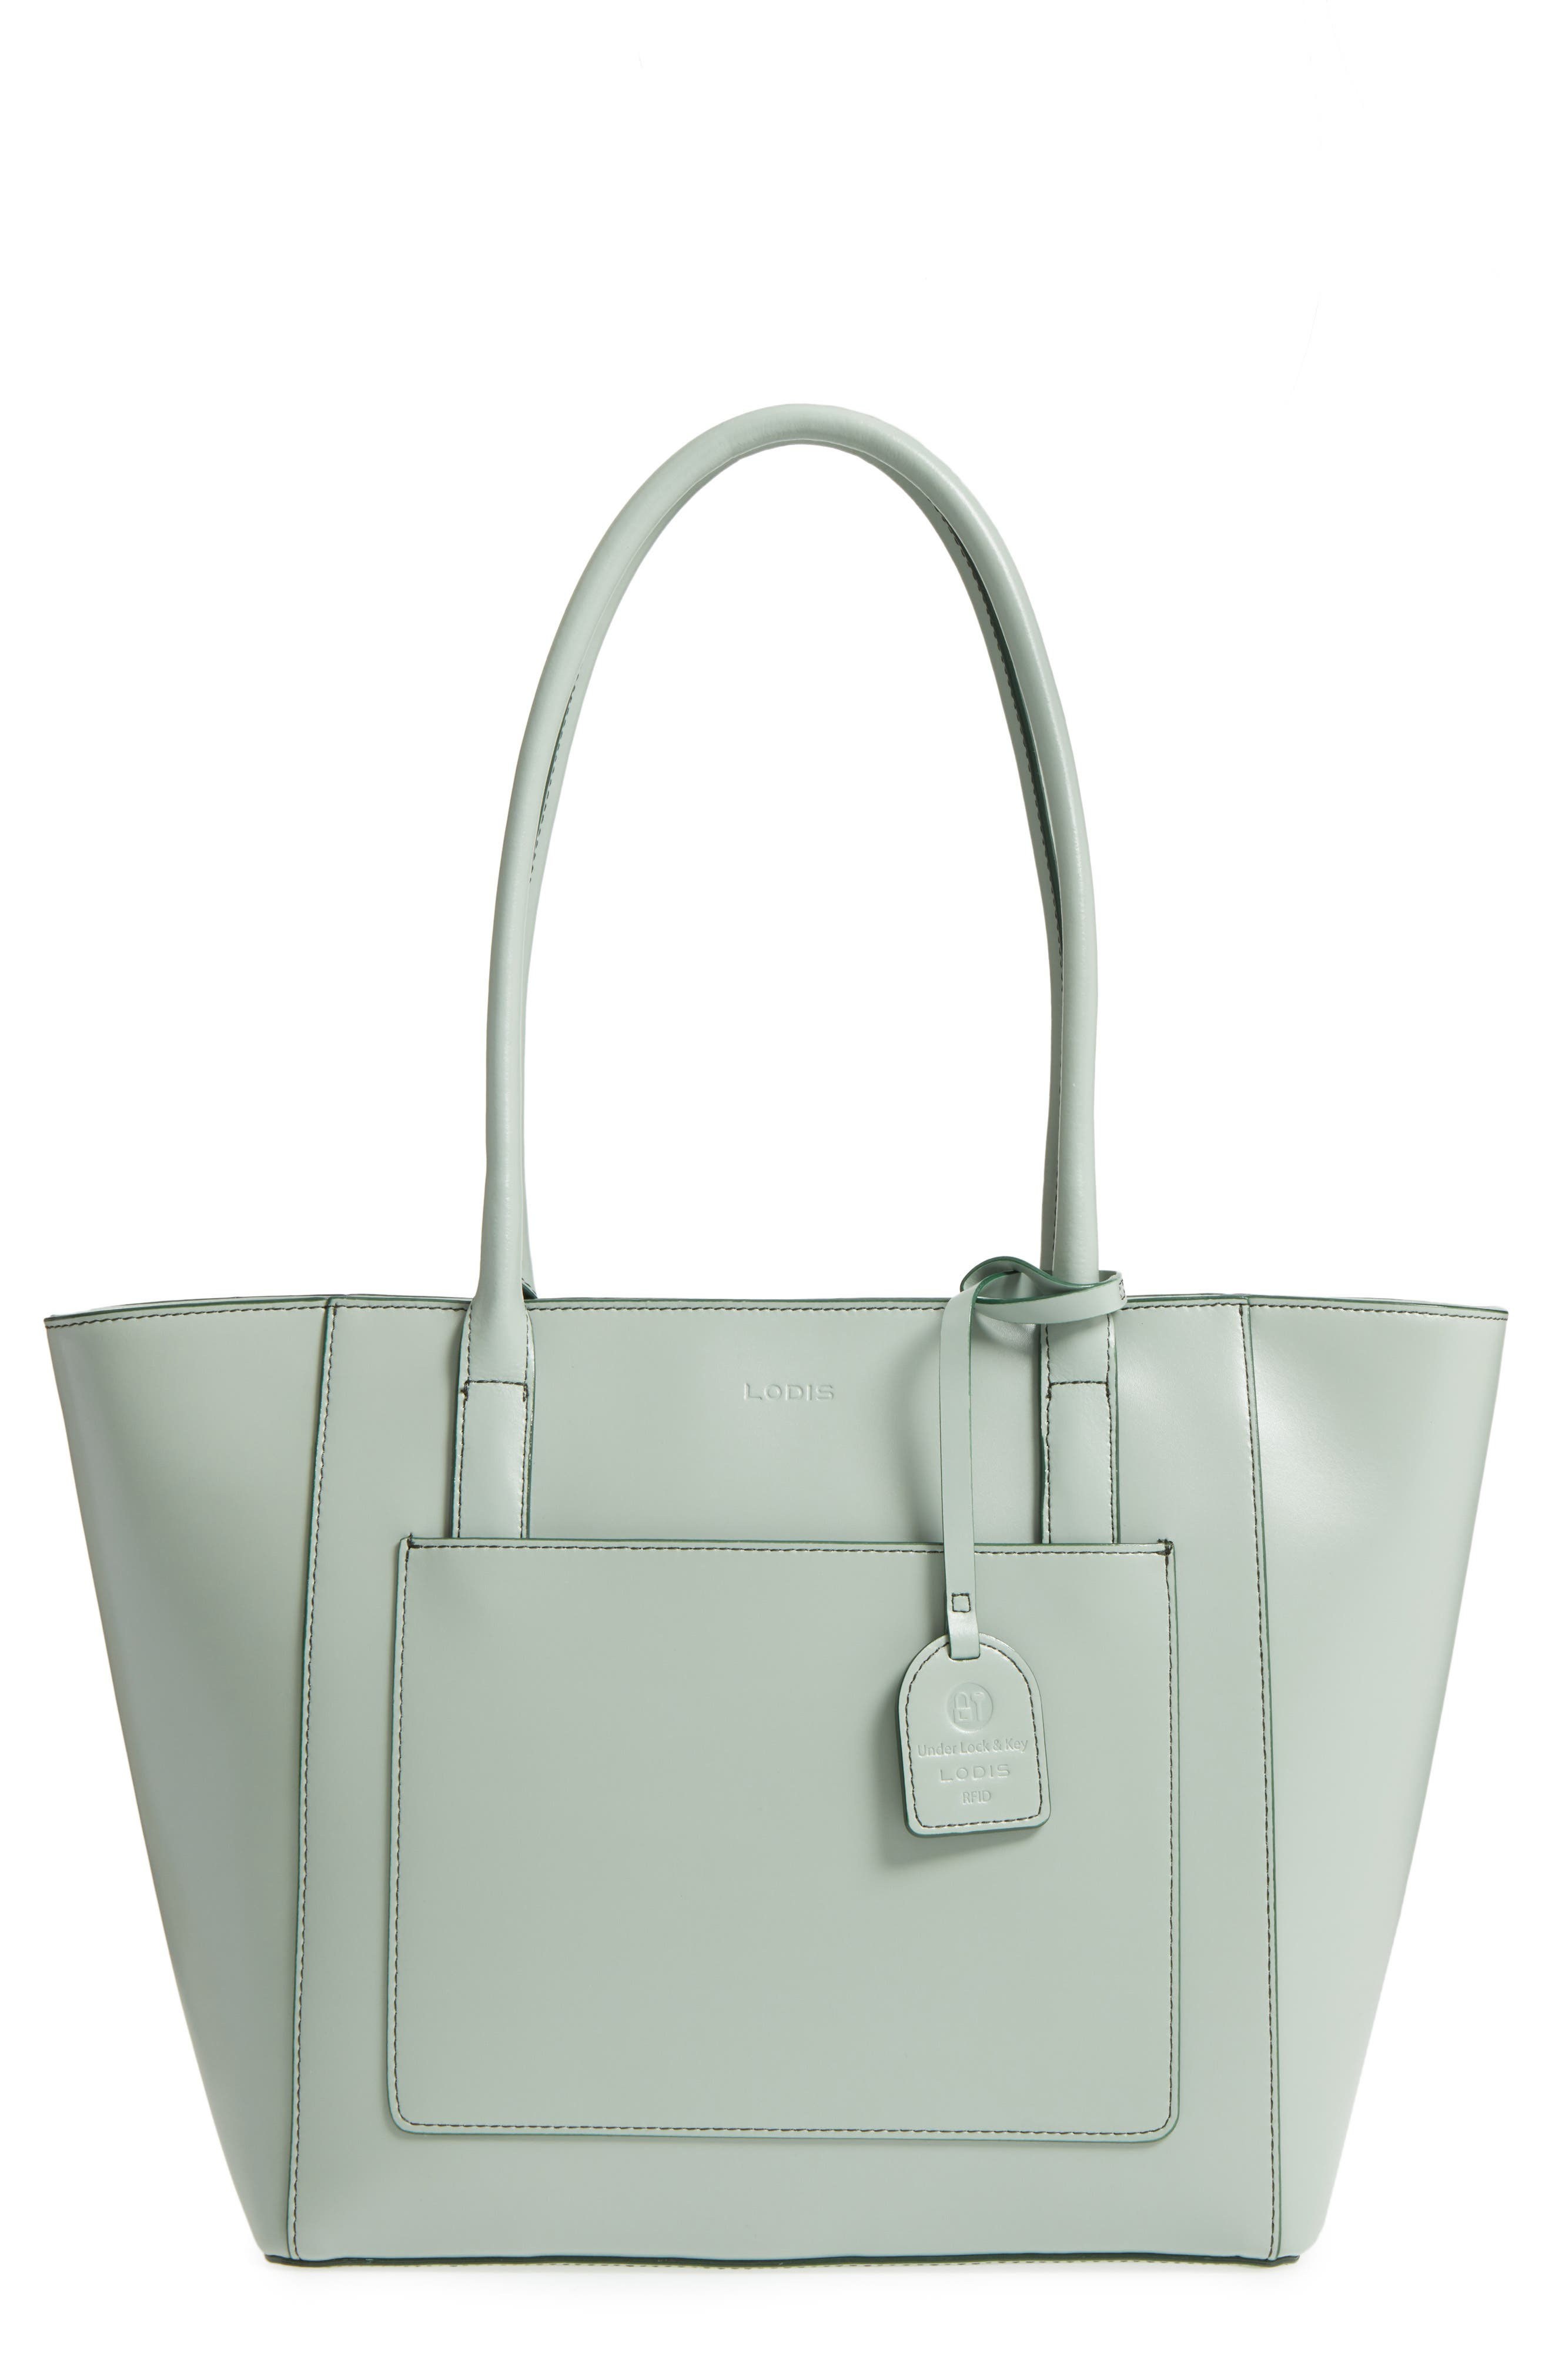 Alternate Image 1 Selected - Lodis Audrey Under Lock & Key - Medium Margaret RFID Leather Tote with Zip Pouch